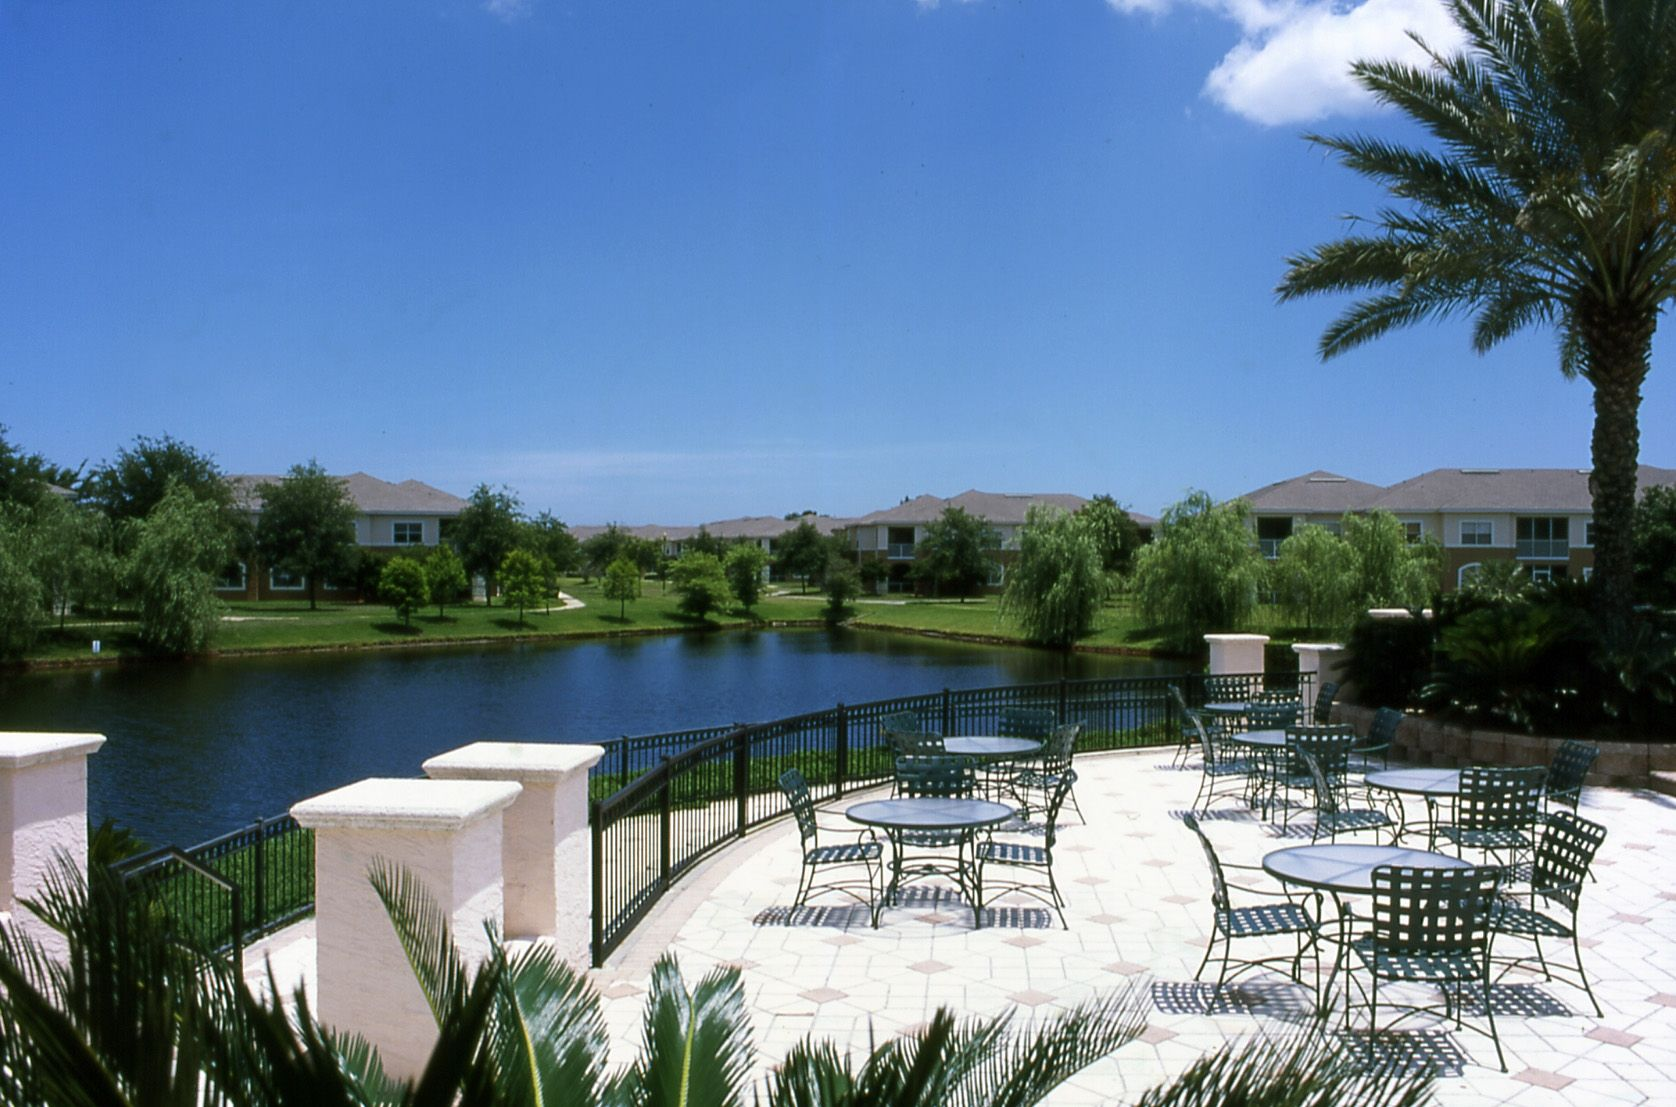 This Is My Next Apartment Peaceful Water Views Yes Please Jacksonville Florida Dream Home Design Florida Home Vacation Home